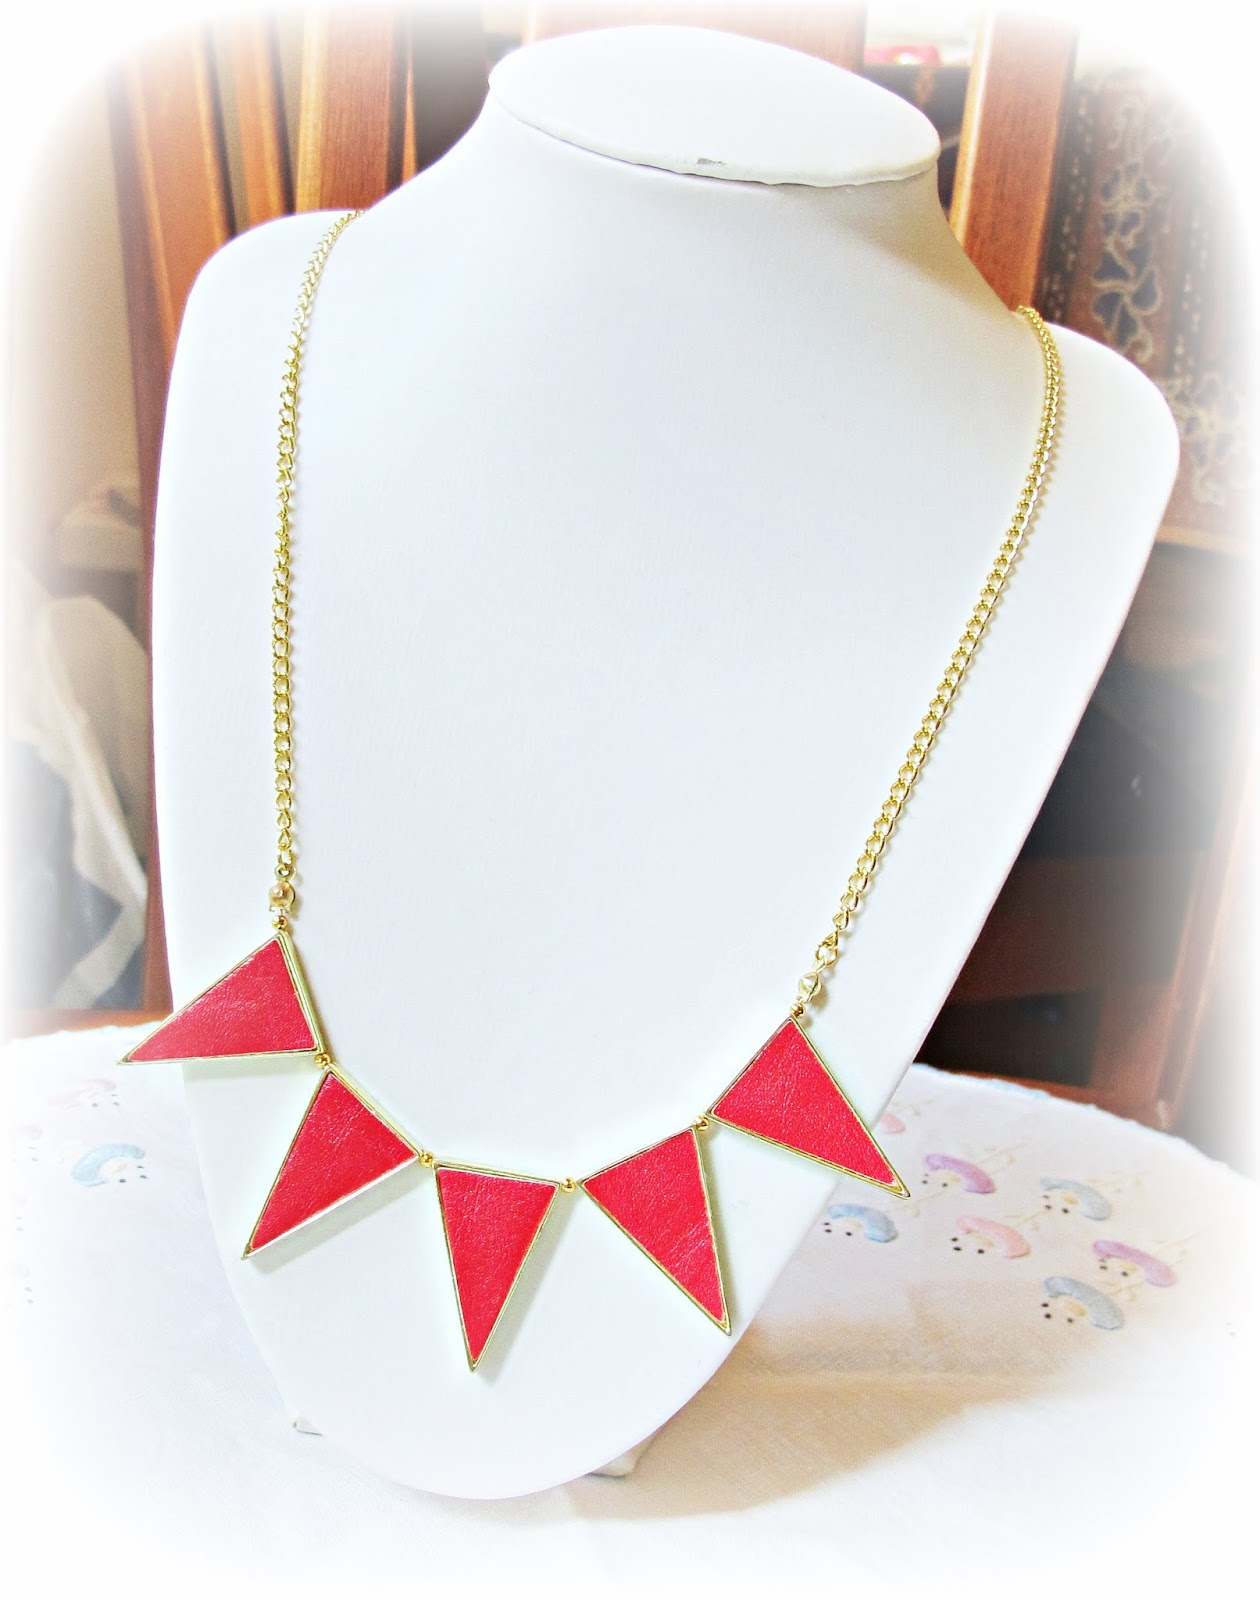 image diy tutorial necklace refashon bunting red gold